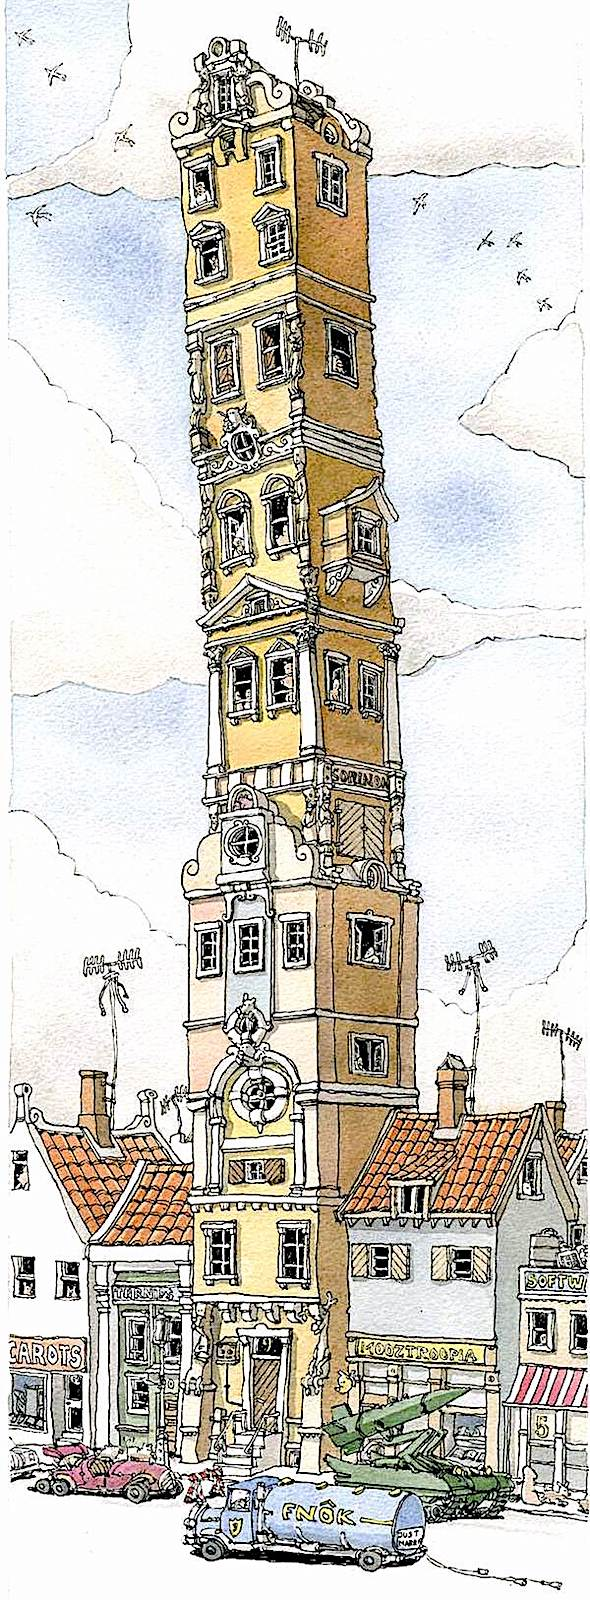 a Mattias Adolfsson drawing of a very tall apartment building in a town